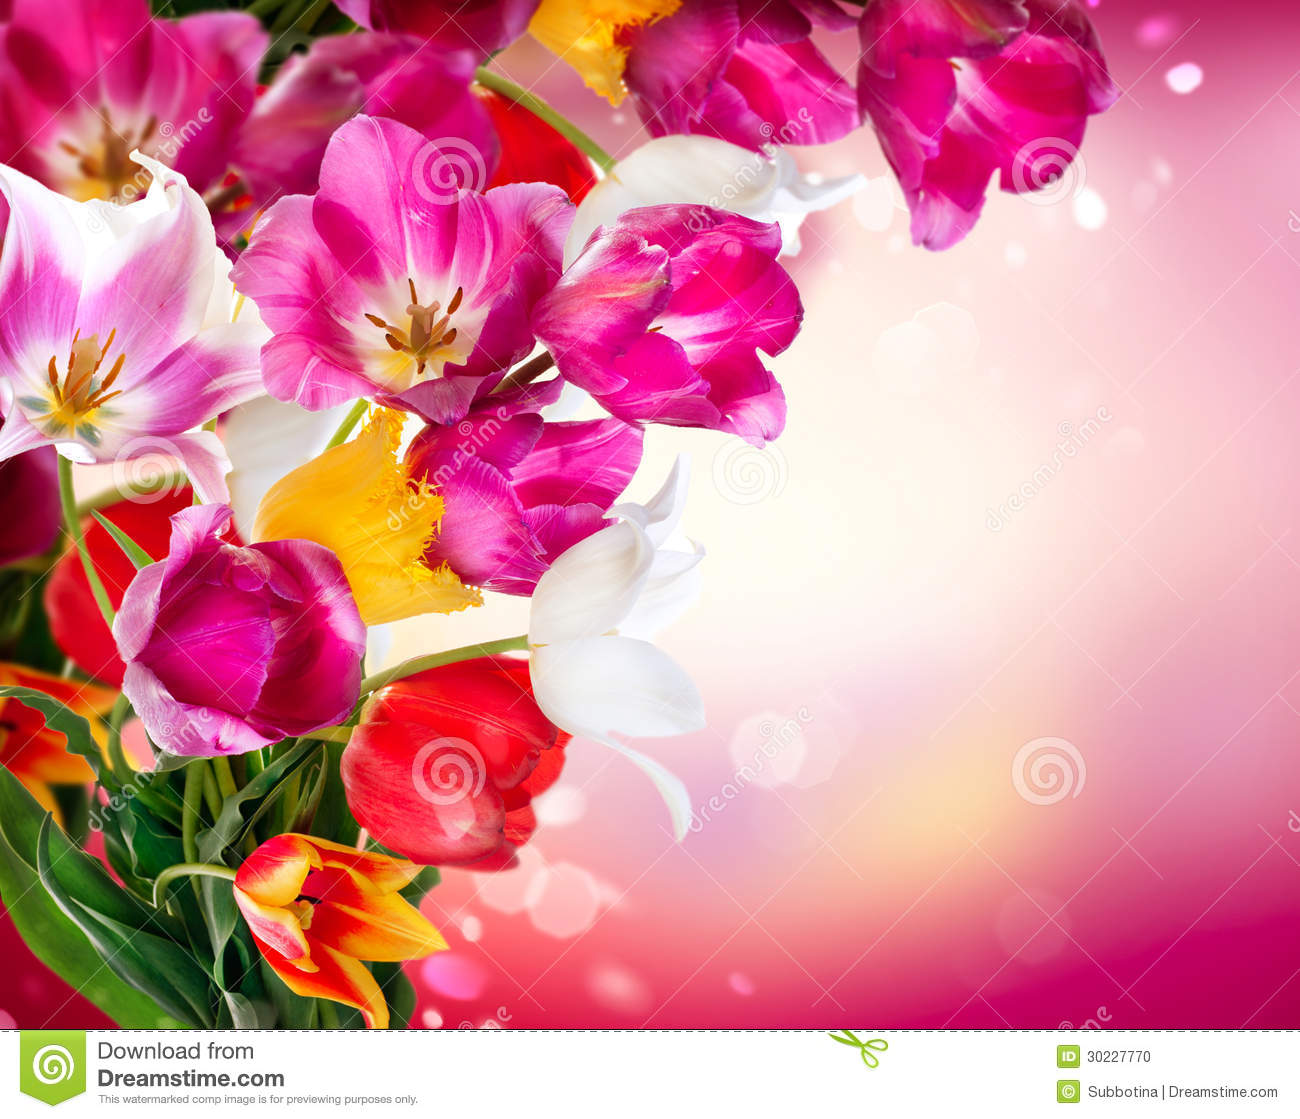 Spring Tulips Stock Photo - Image: 30227770